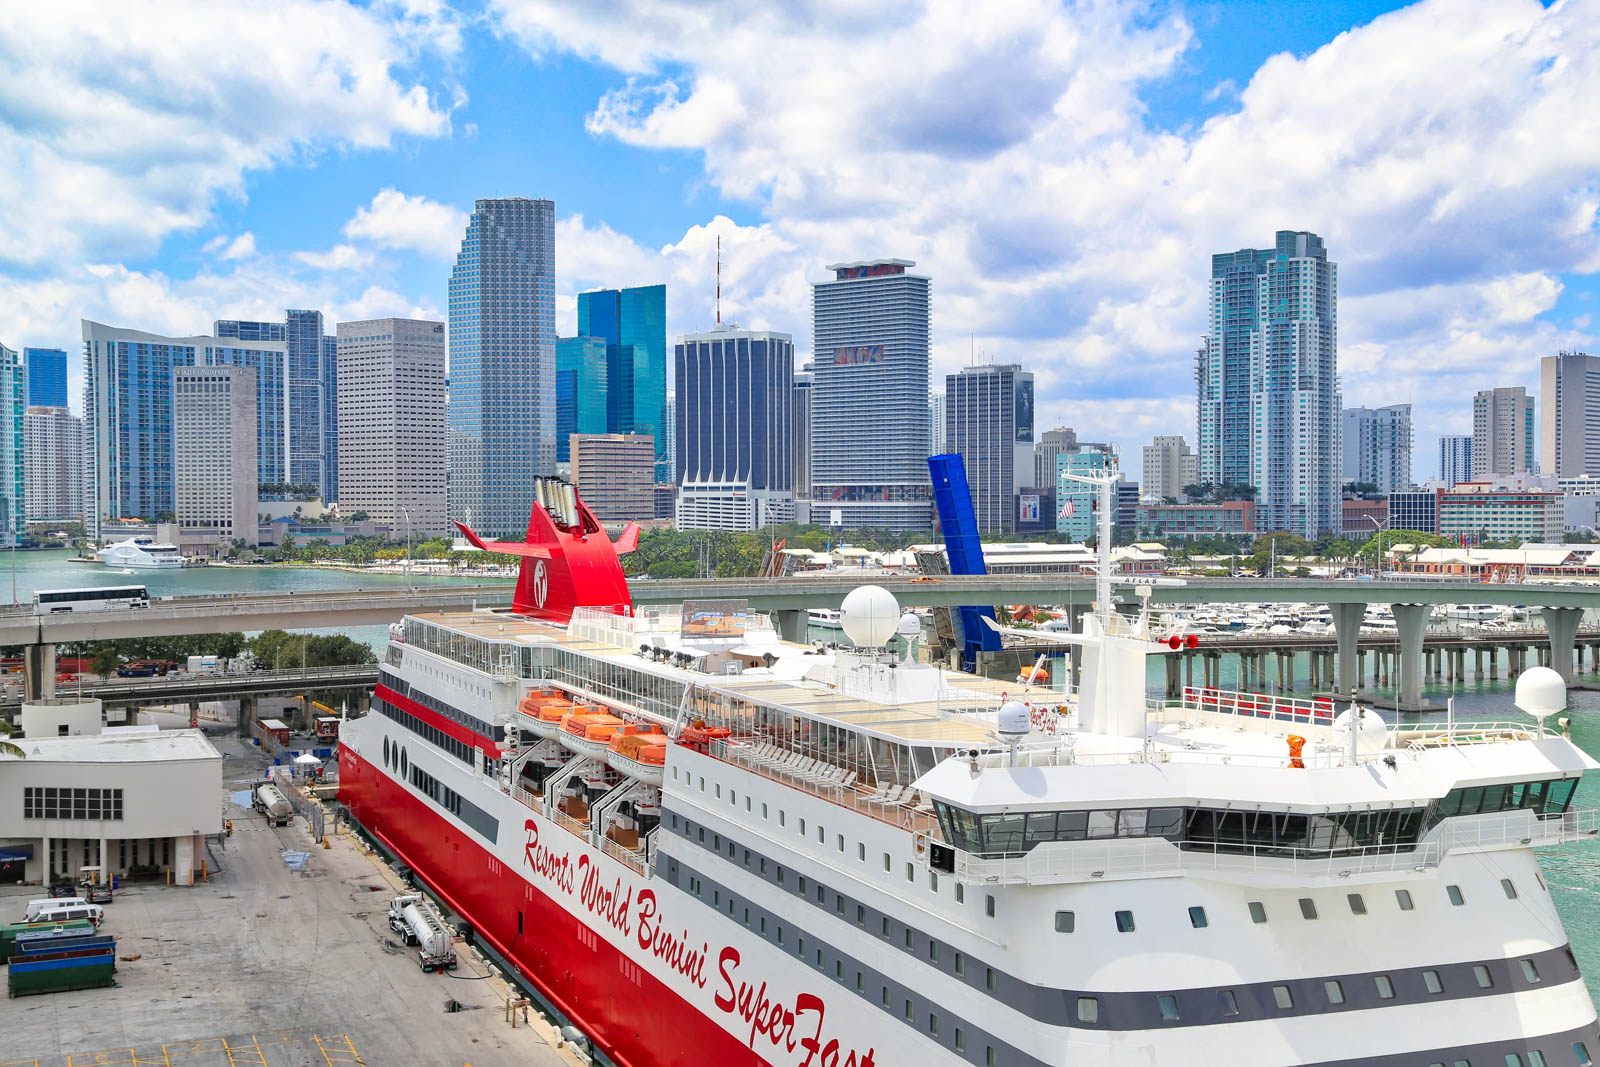 The busy Miami cruise port from above. Avoid this boat from Miami to Bahamas and fly with Bahamas Air Tours instead.